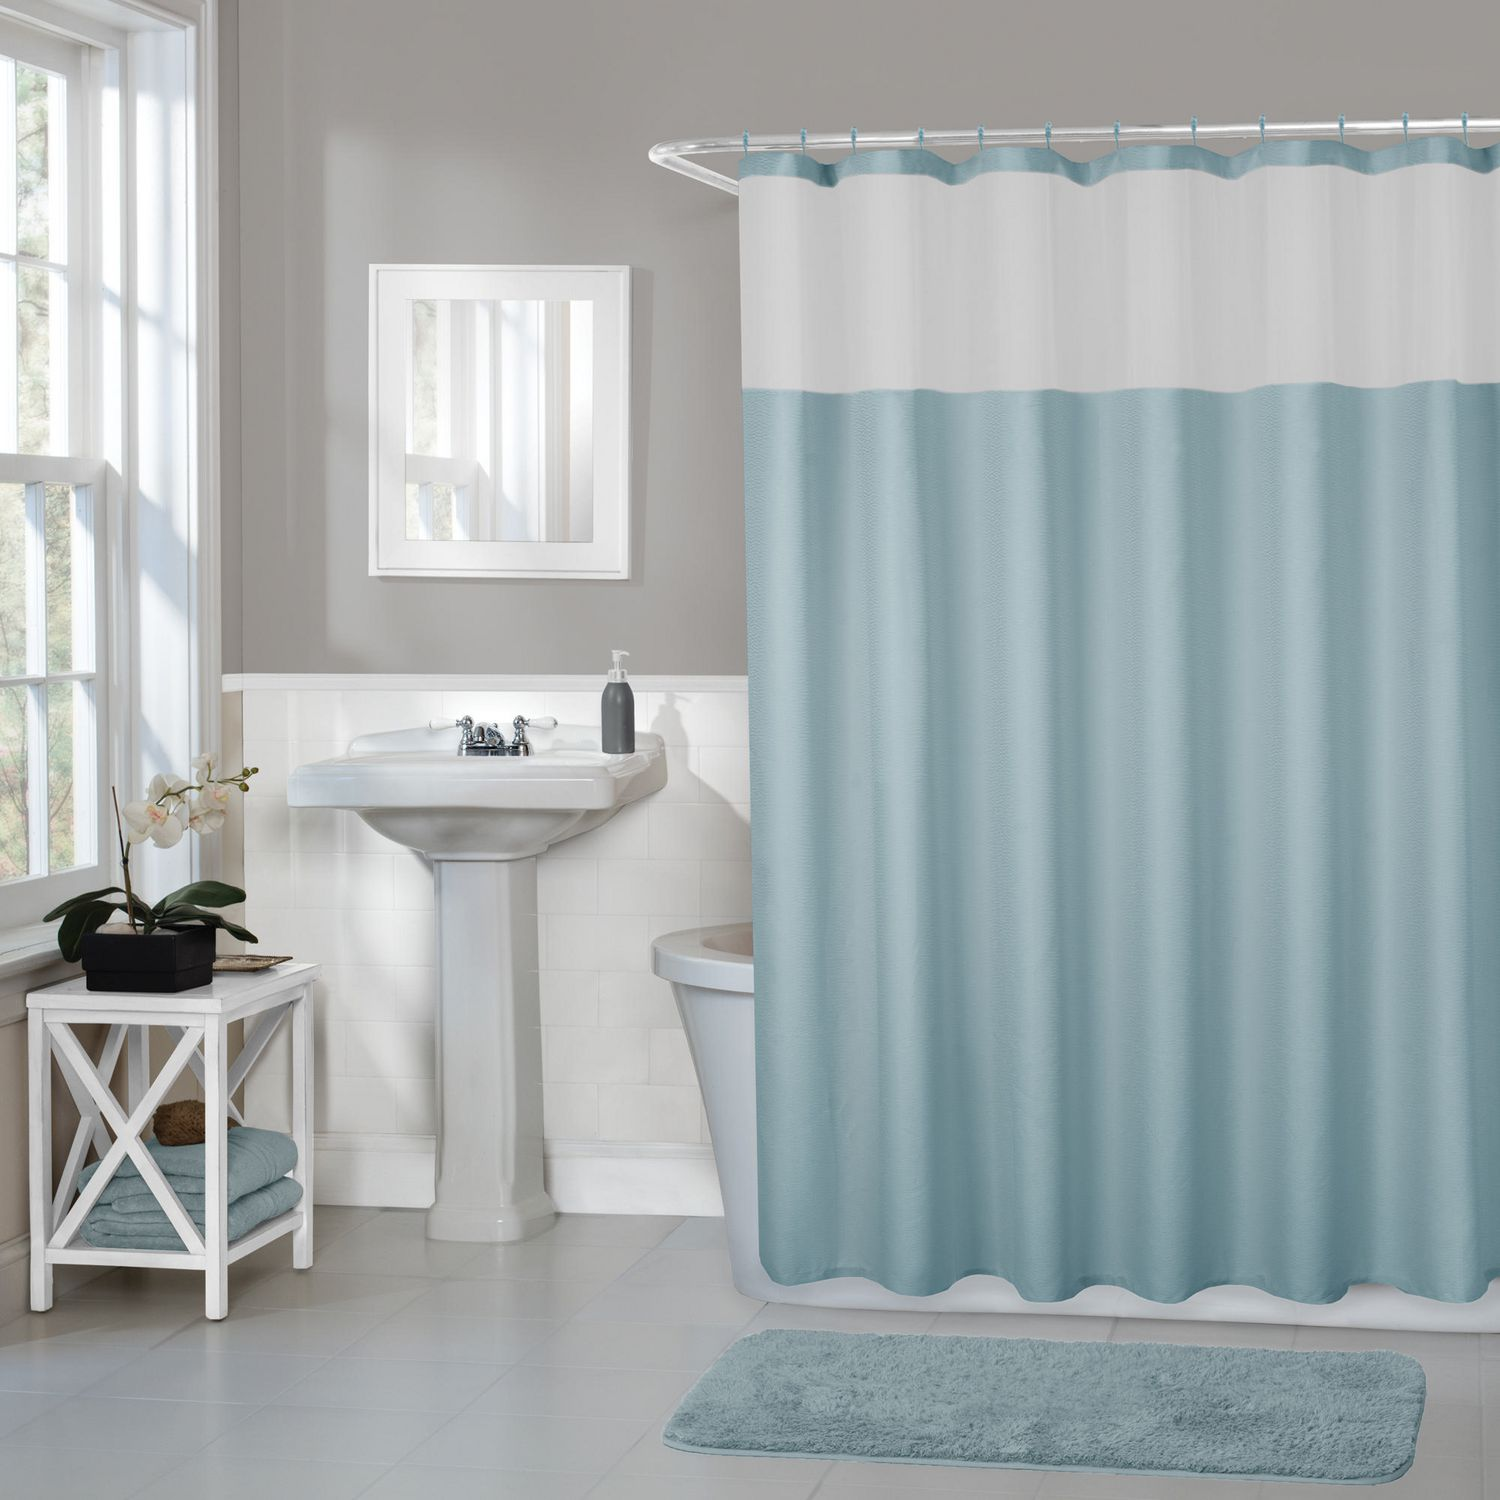 Hometrends Home Trends Smart Curtains Hendrix Fabric Shower Curtain With Attached Roller Glide Hooks 70 Inches X 72 Inches Blue